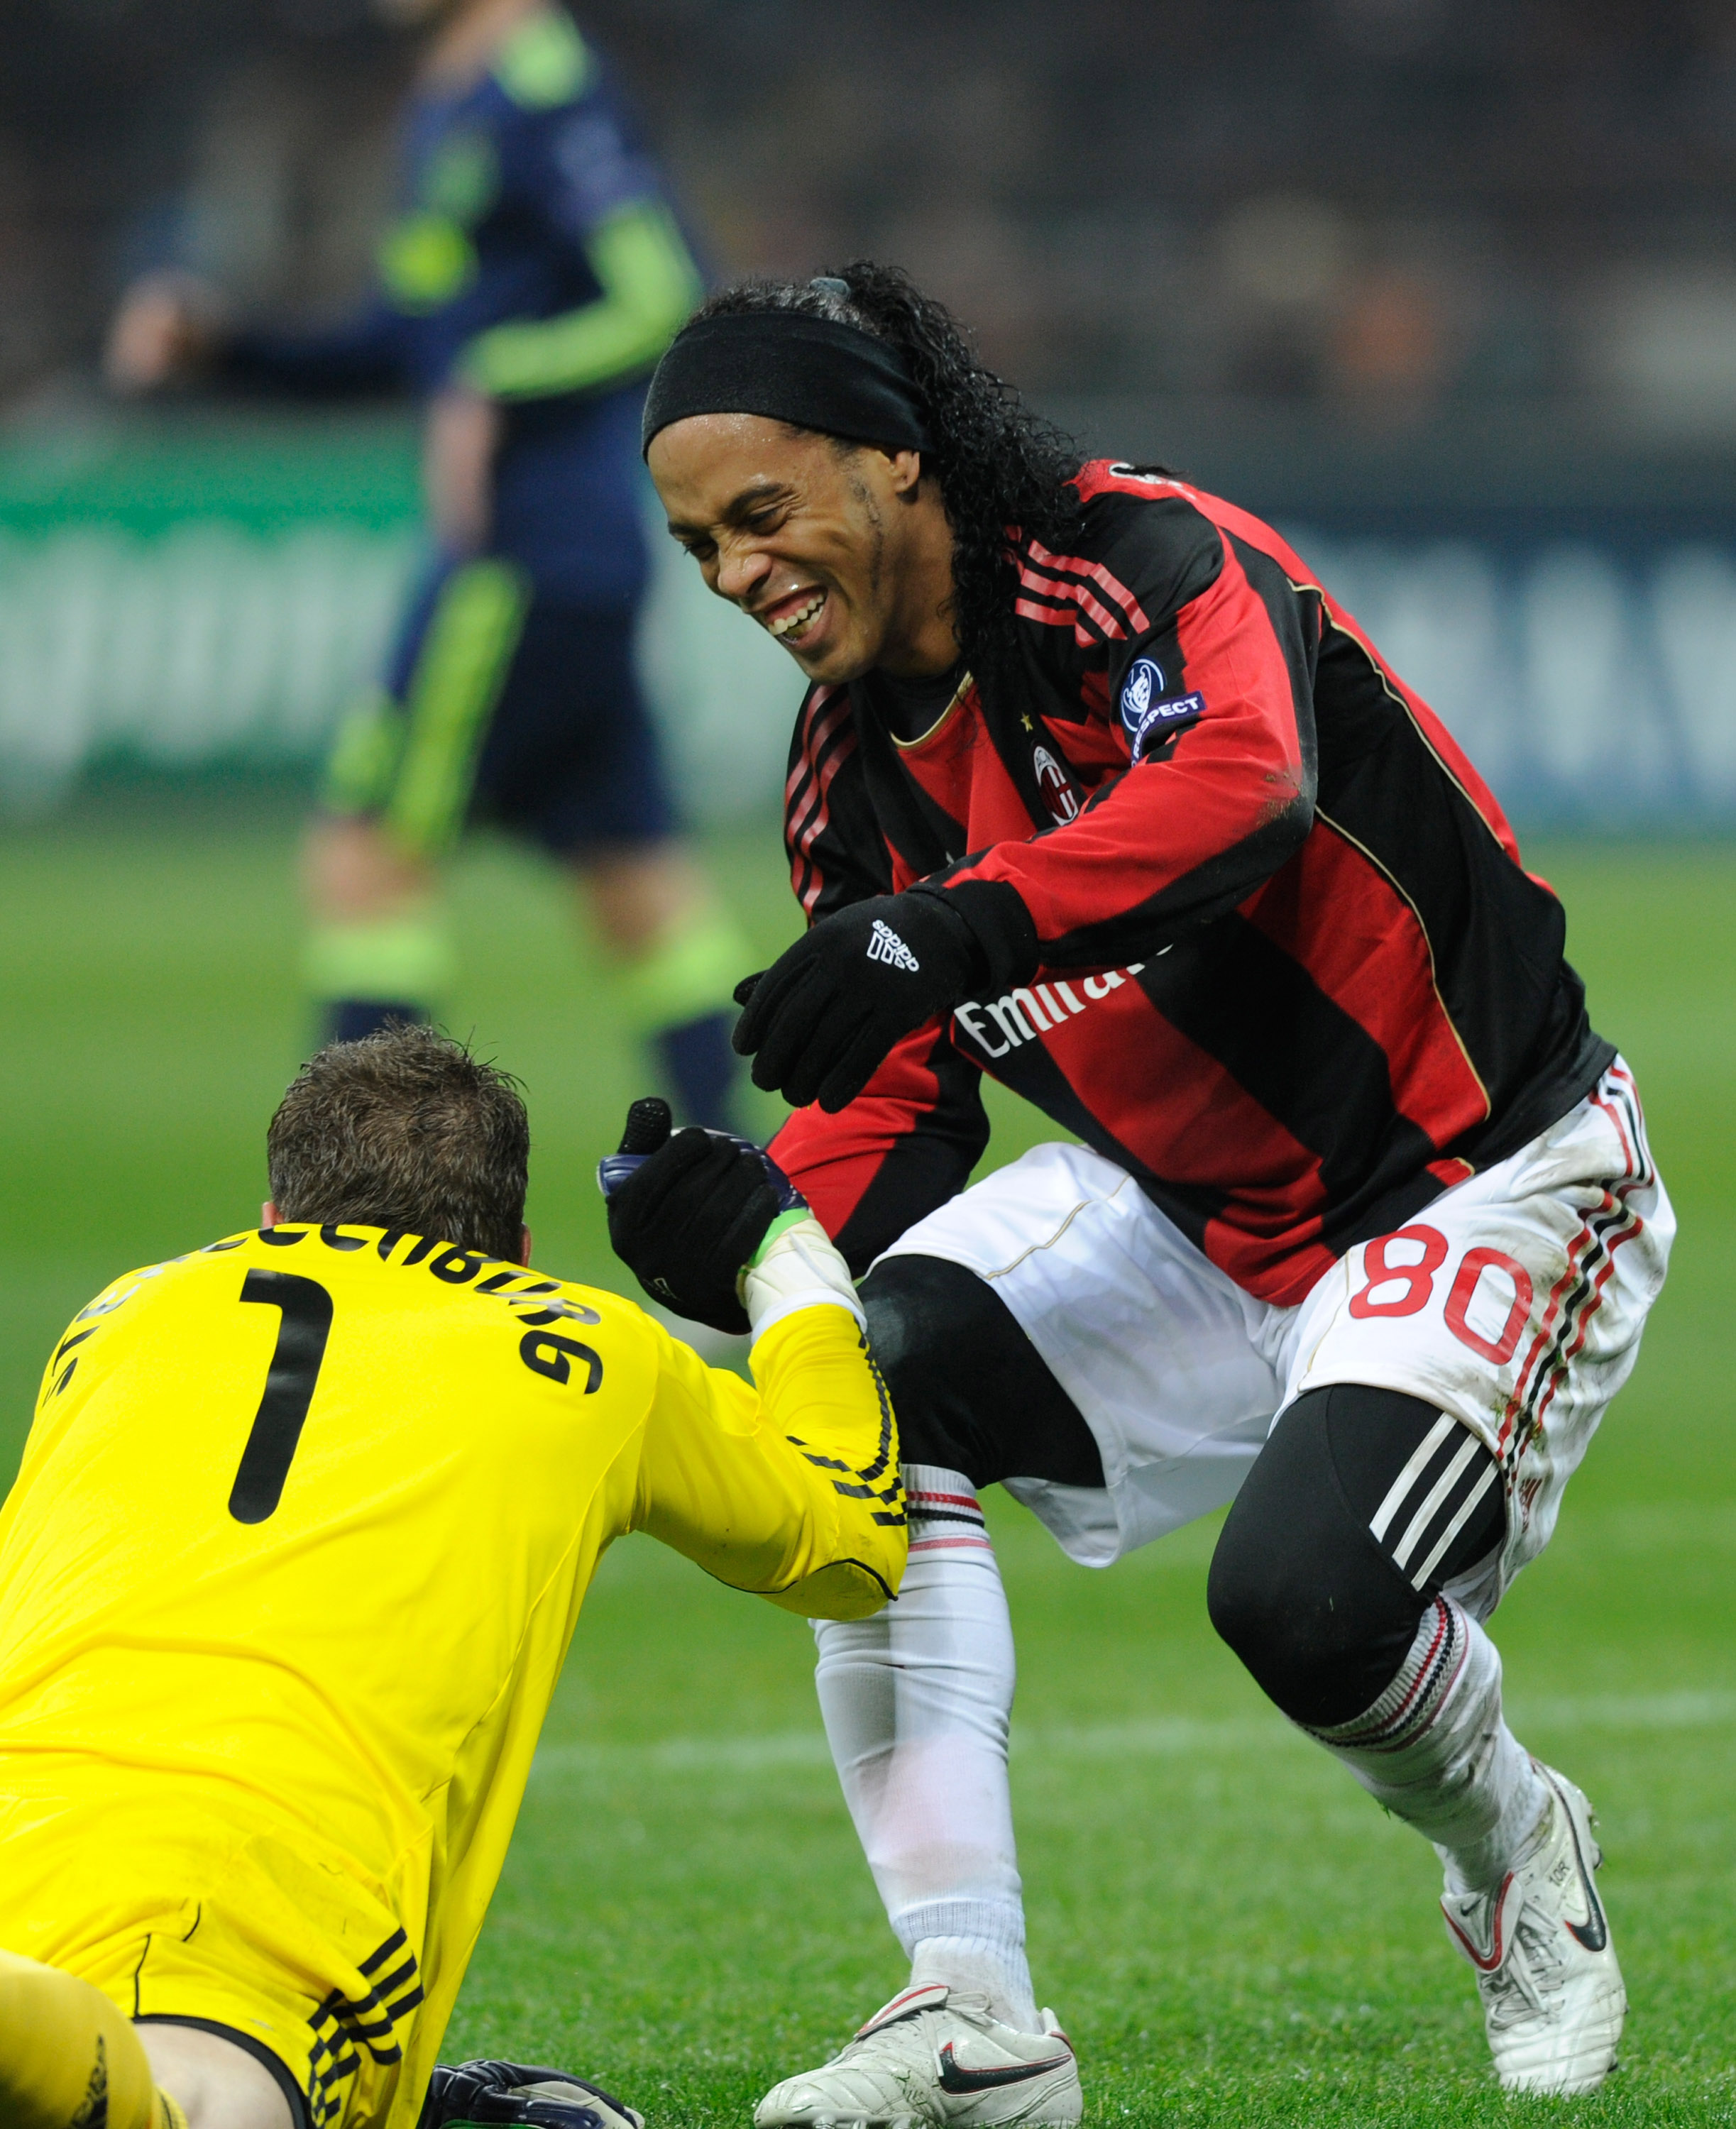 MILAN, ITALY - DECEMBER 08:  Maarten Stekelenburg of AFC Ajax is helped up by Ronaldinho of AC Milan during the UEFA Champions League Group G match between AC Milan and AFC Ajax at Stadio Giuseppe Meazza on December 8, 2010 in Milan, Italy.  (Photo by Cla